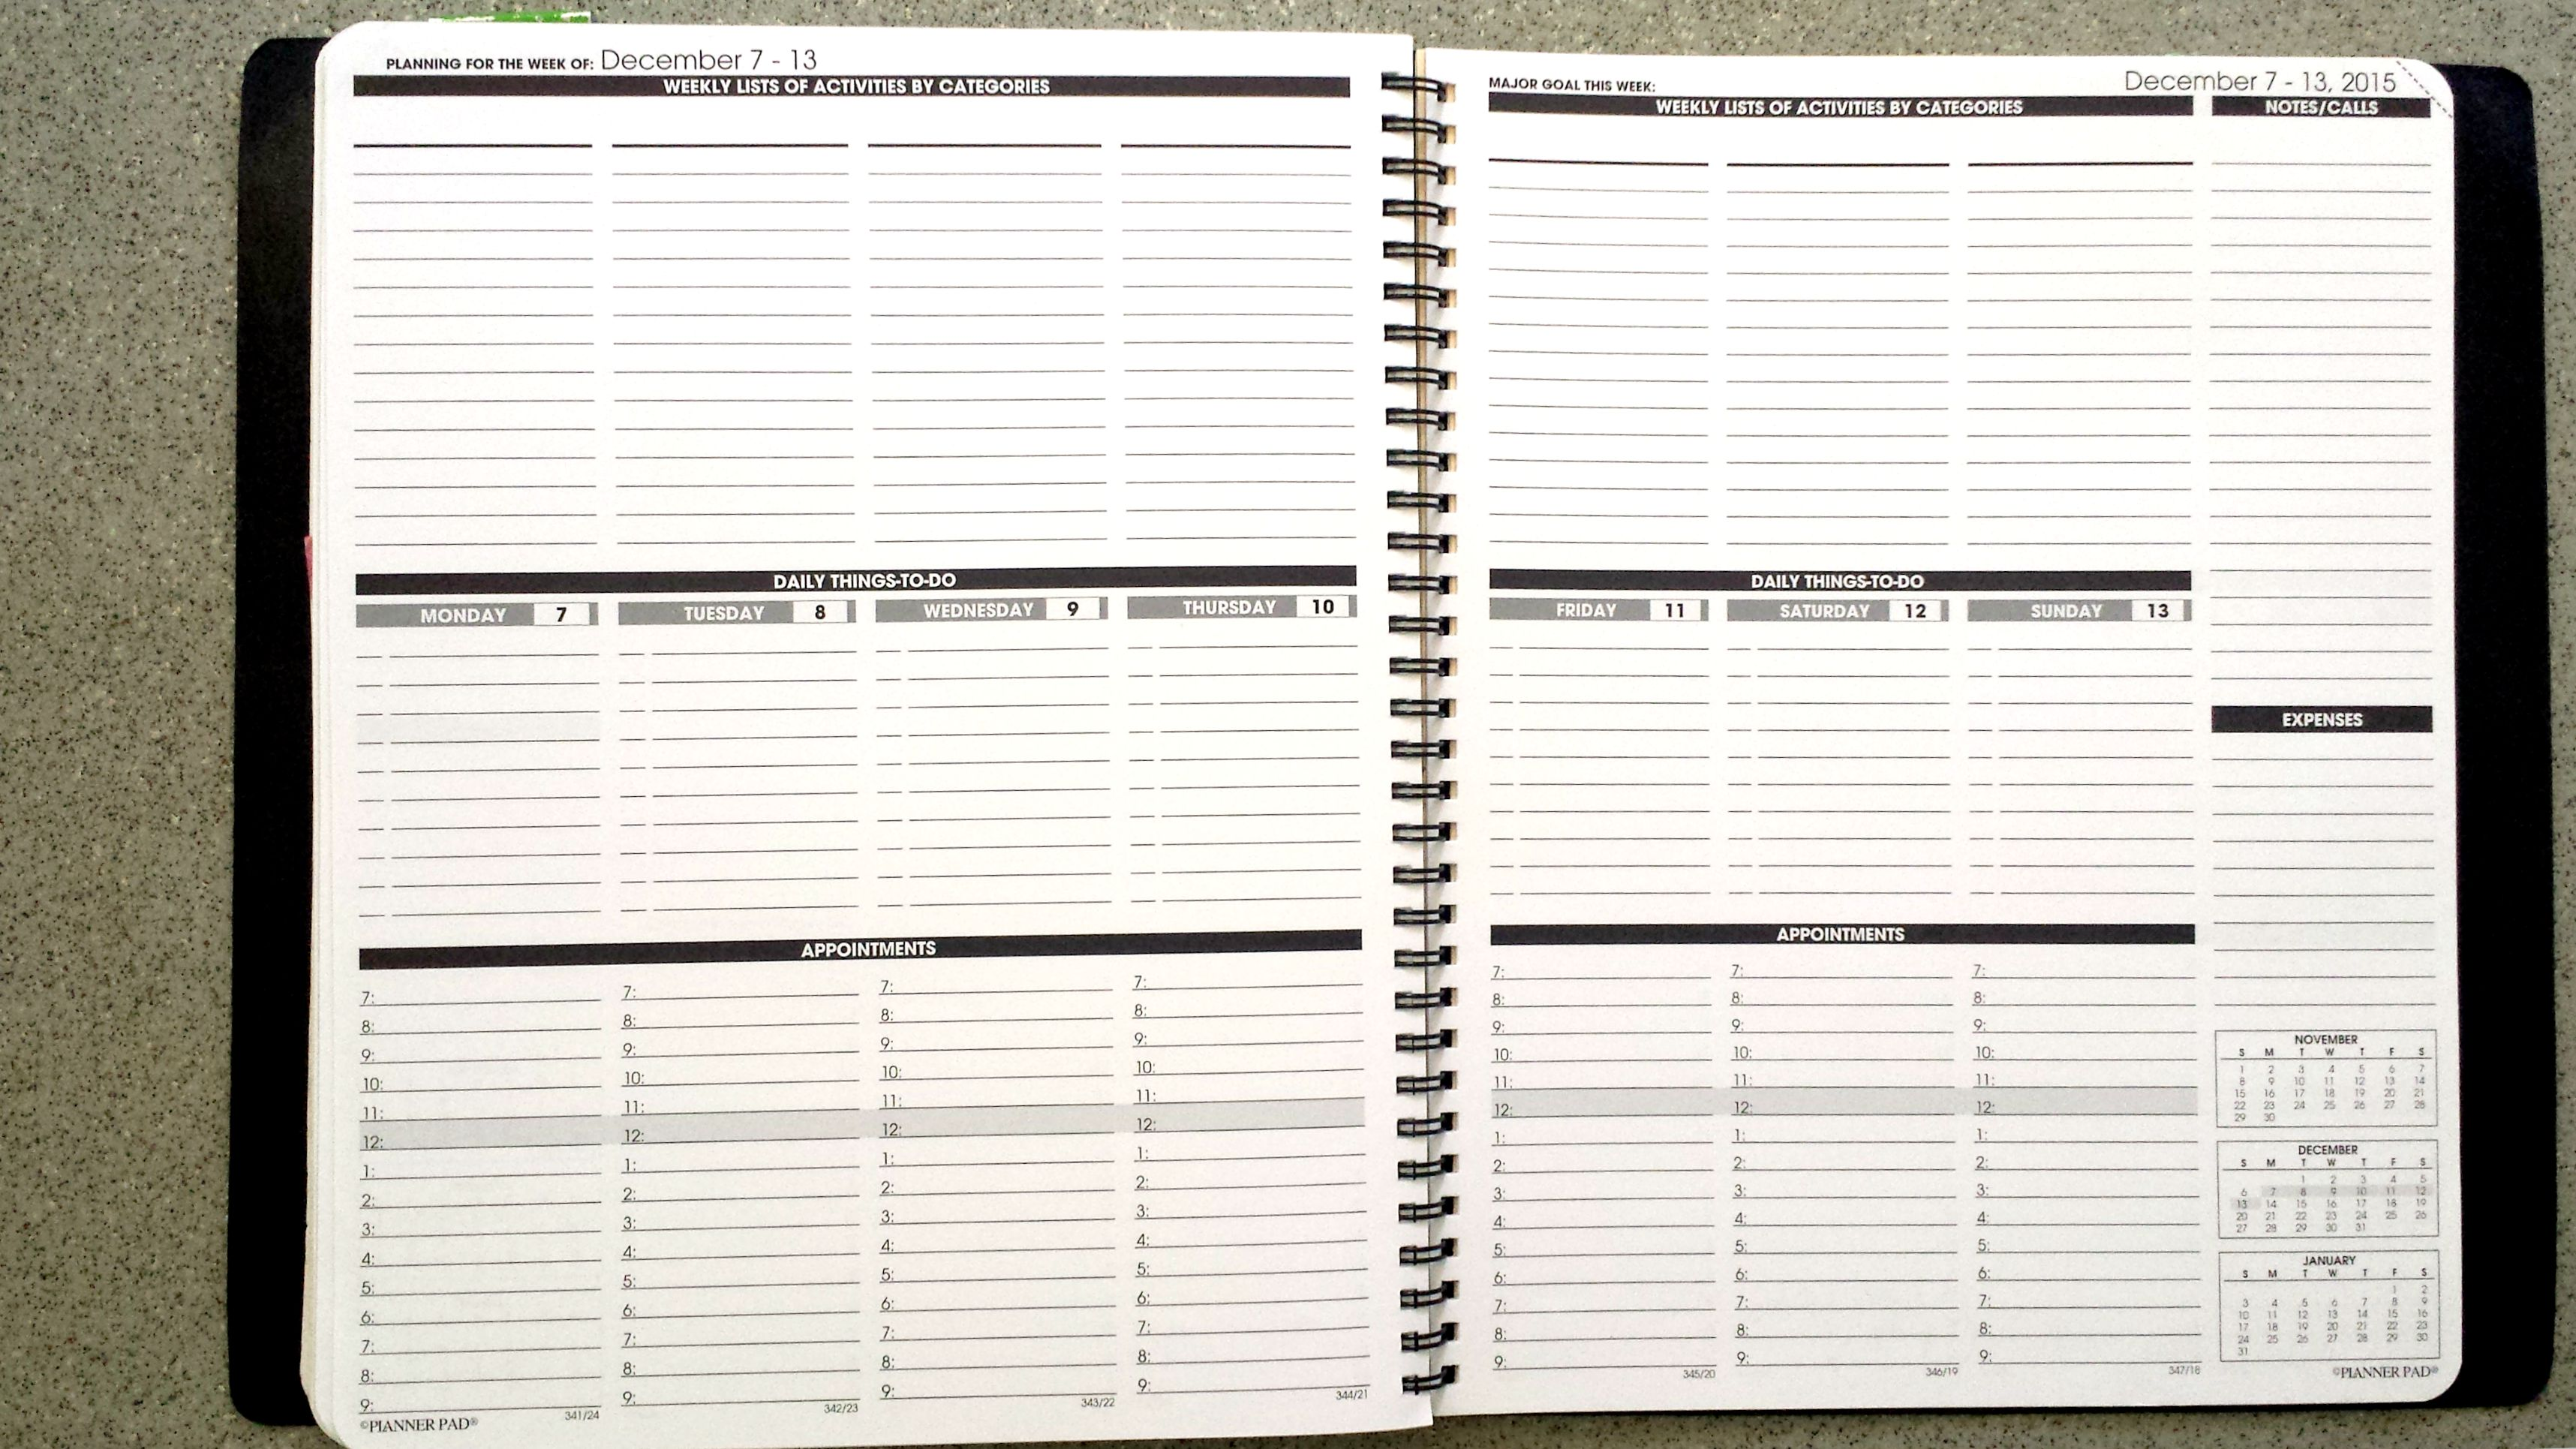 eb15ba891e8f The daily planner professional organizers love the most